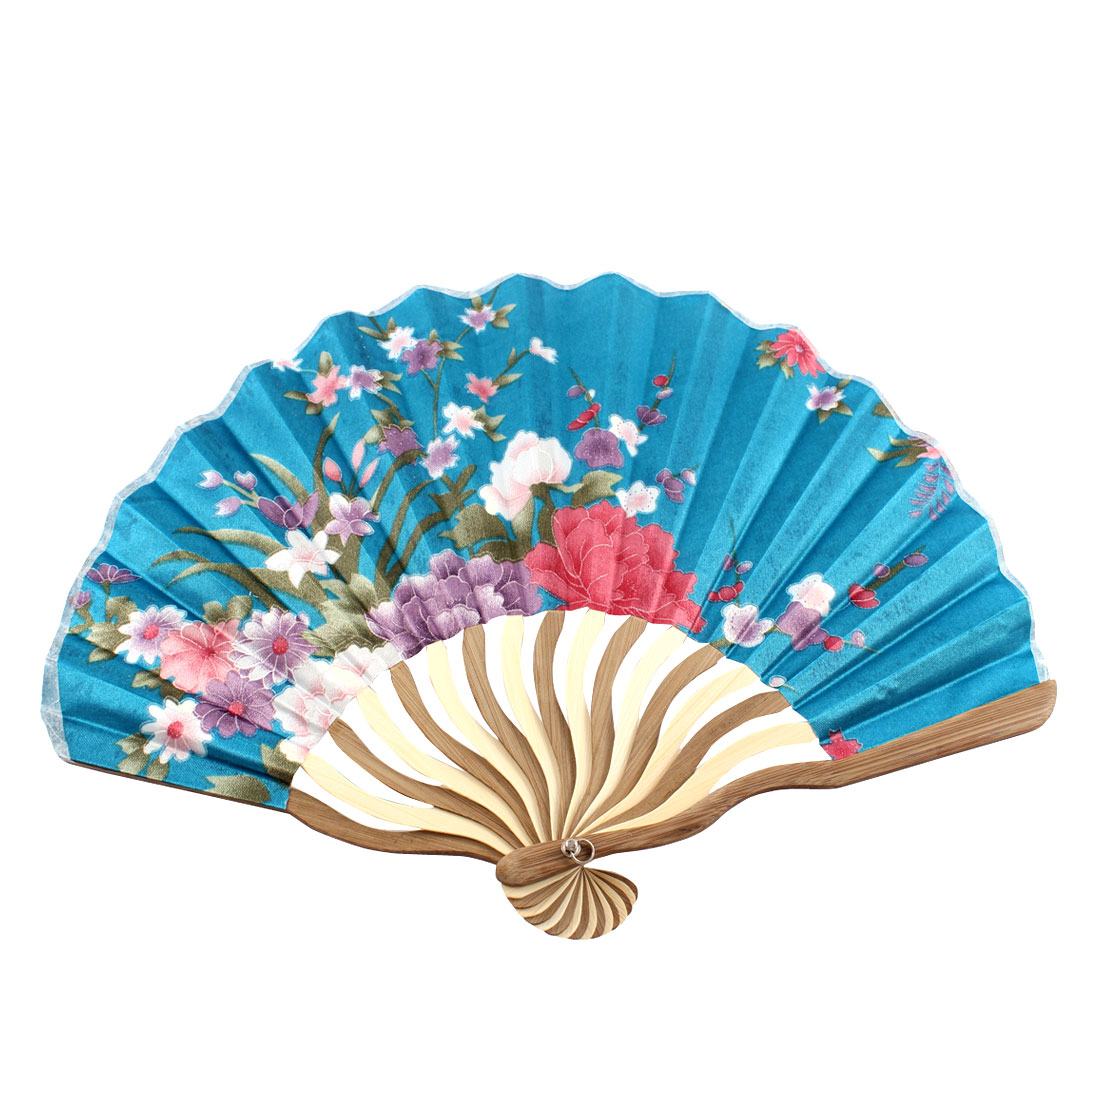 Flower Printed Nylon Bamboo Rib Portable Folded Hand Fan Art Gift Ornament for Women